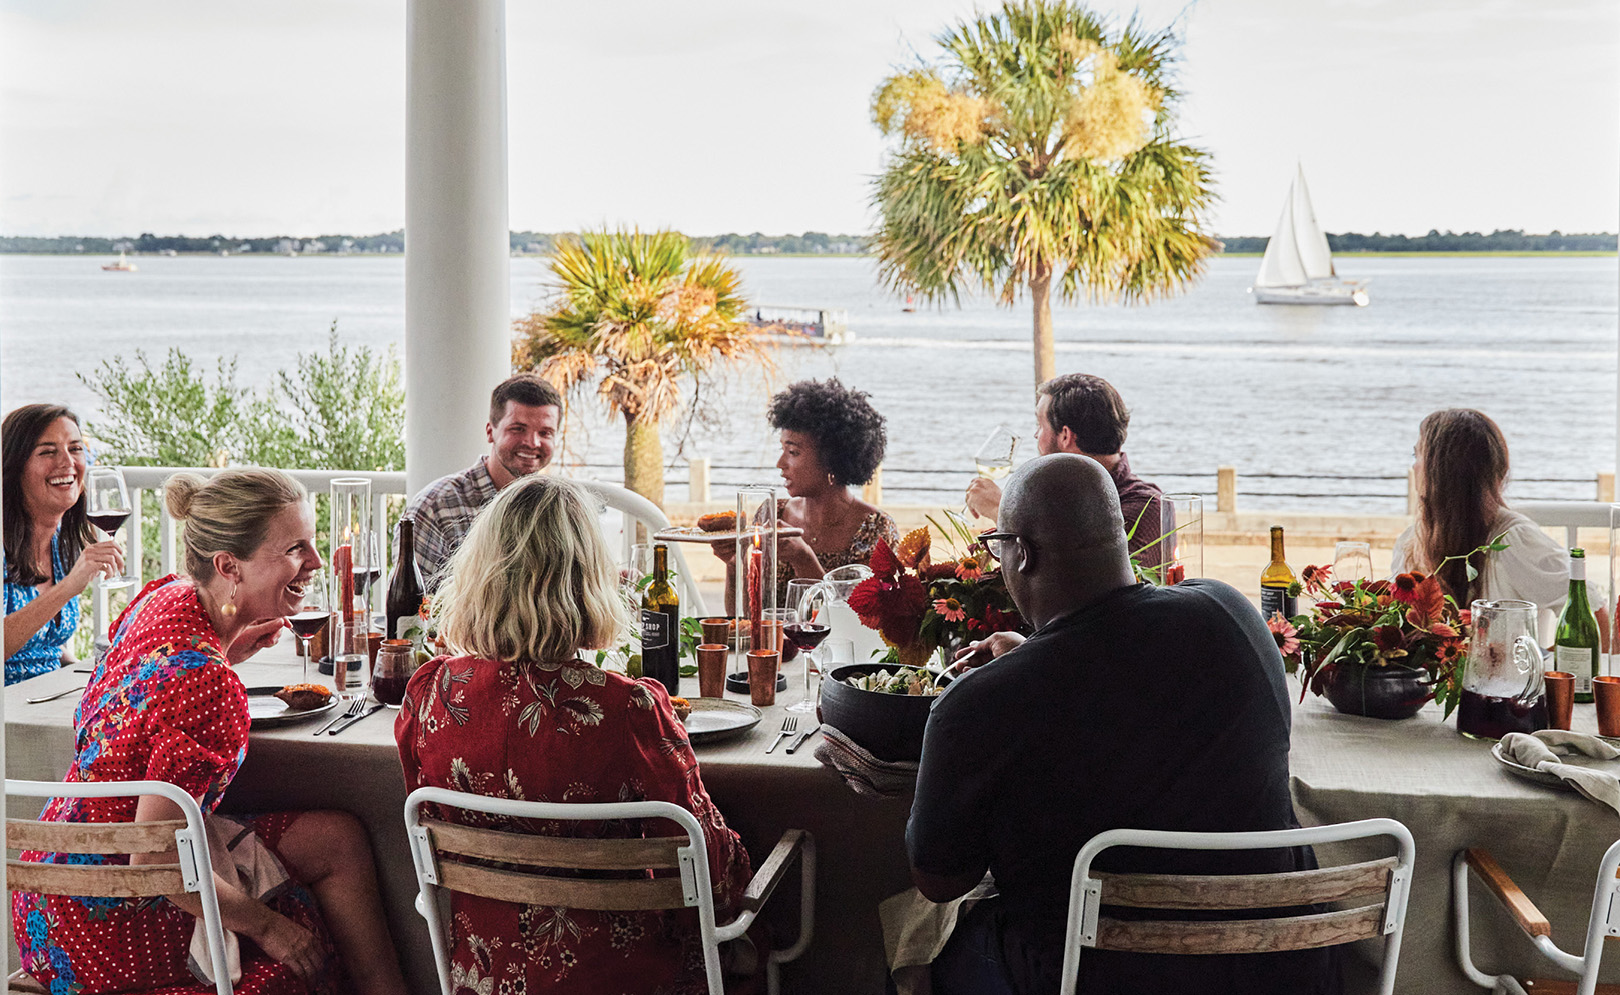 With its Charleston Harbor vantage and welcome breezes, Molly and Ted Fienning's front porch makes a cool spot for a hot (sauce) party.